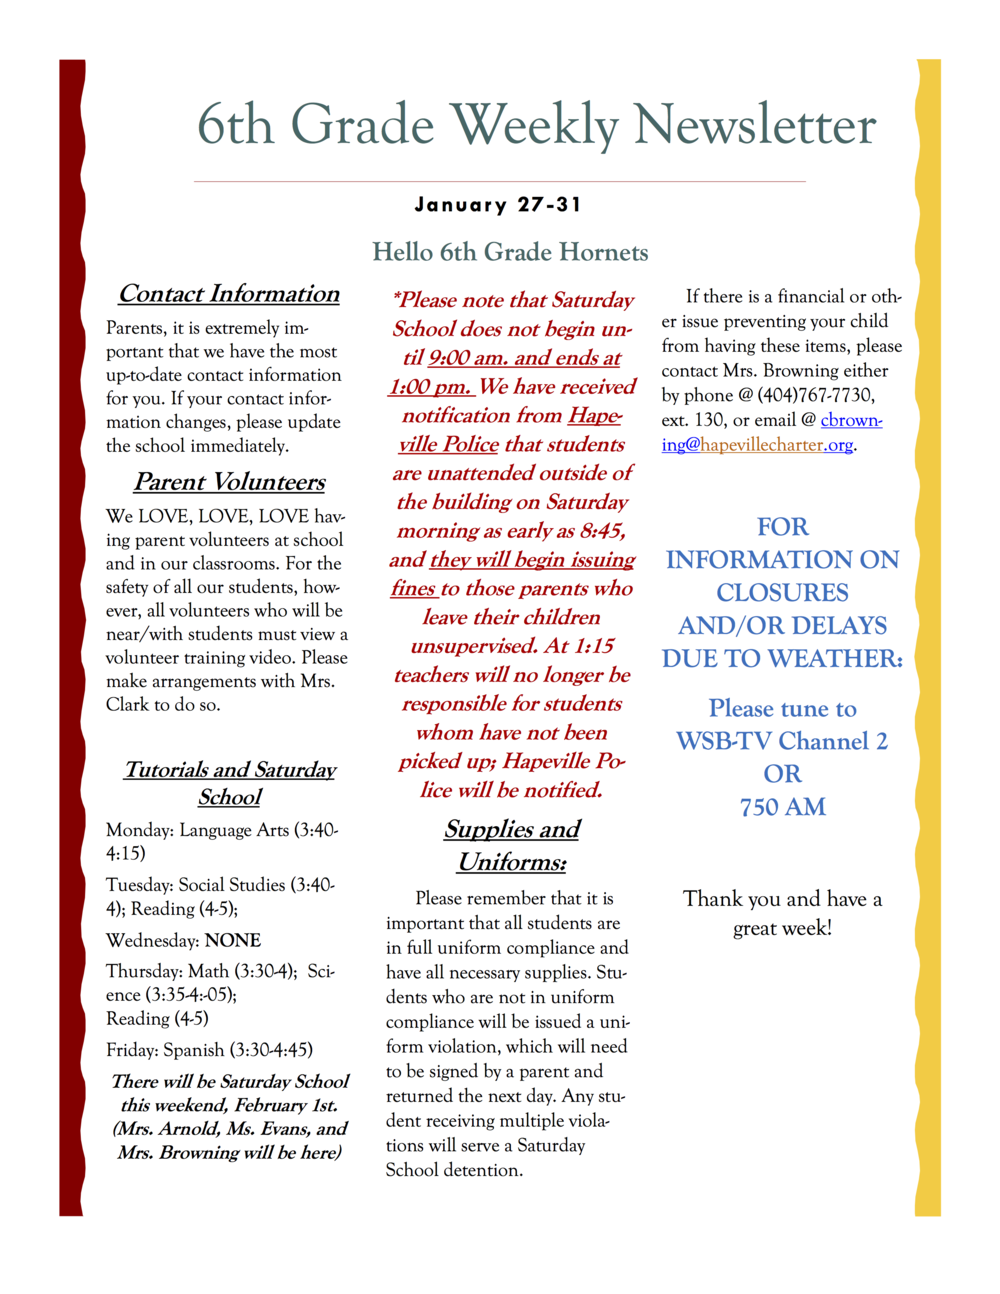 6th grade newsletter January 27-31A.png